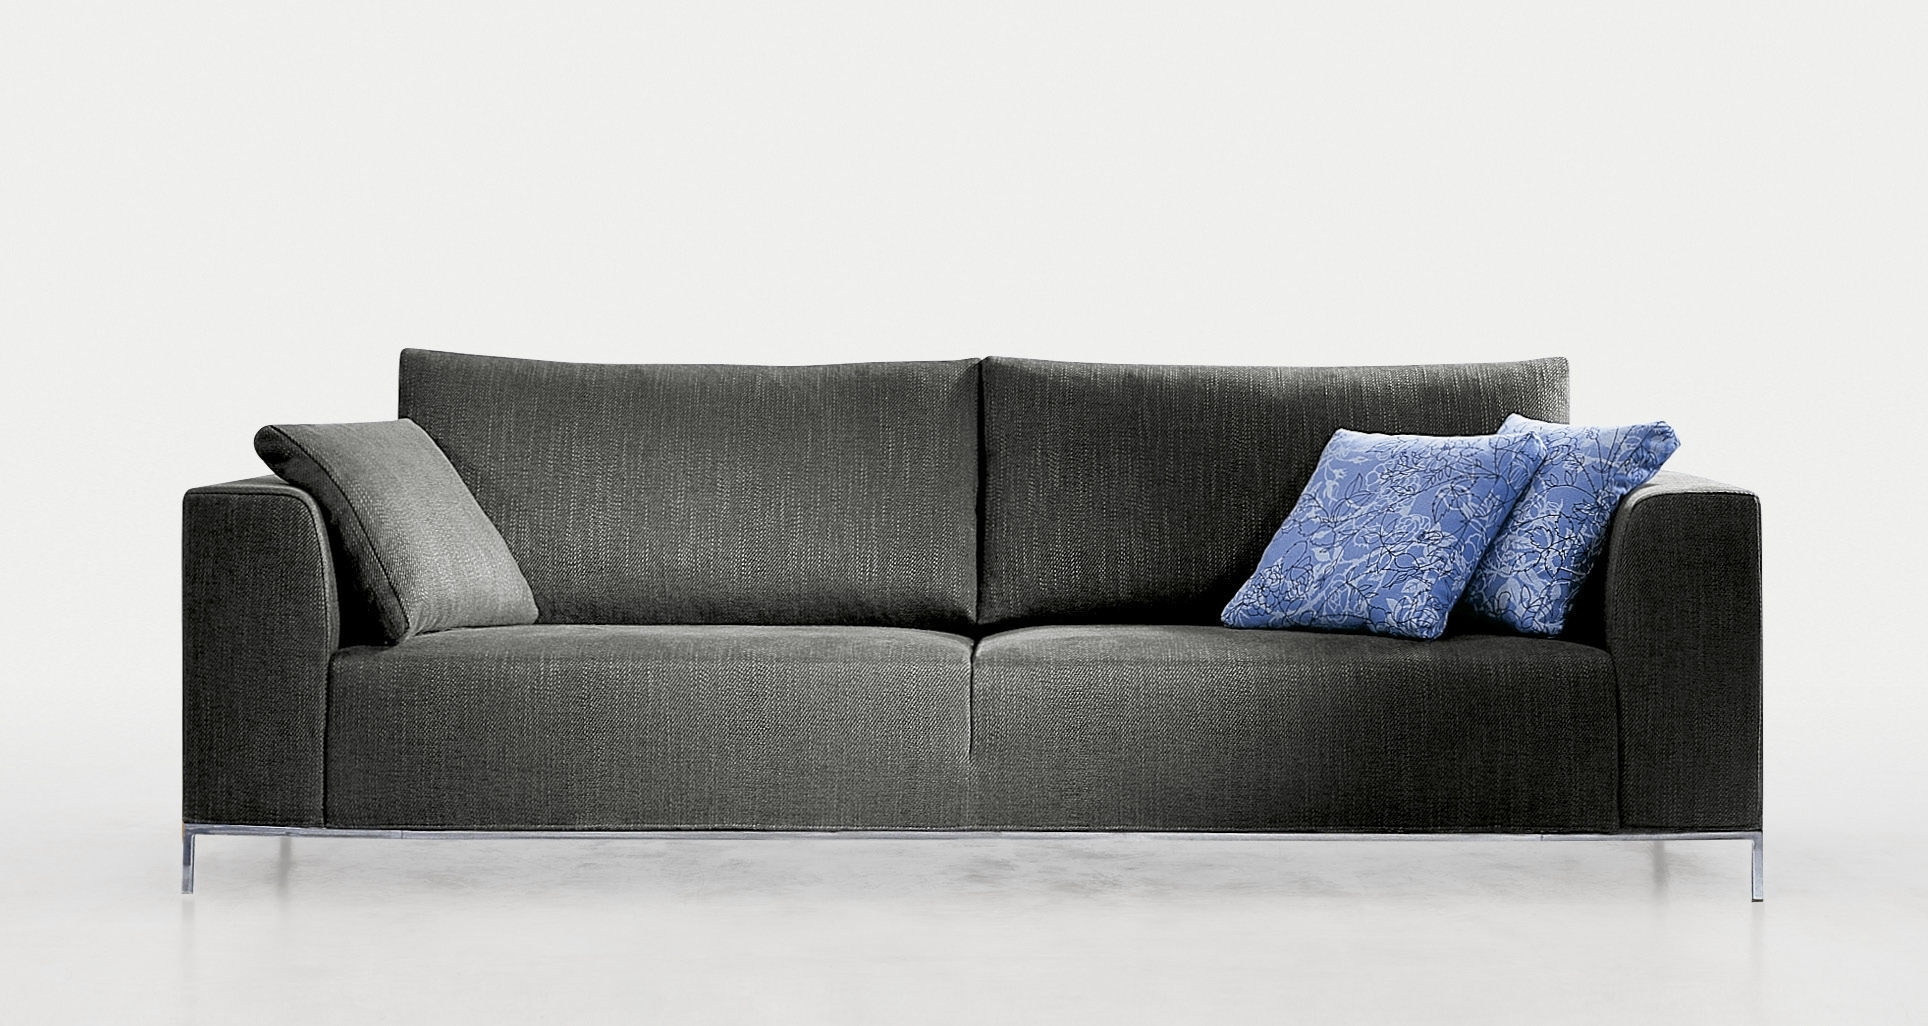 Sofas With Removable Cover Within Preferred Contemporary Sofa / Fabric / 2 Seater / With Removable Cover (View 14 of 15)